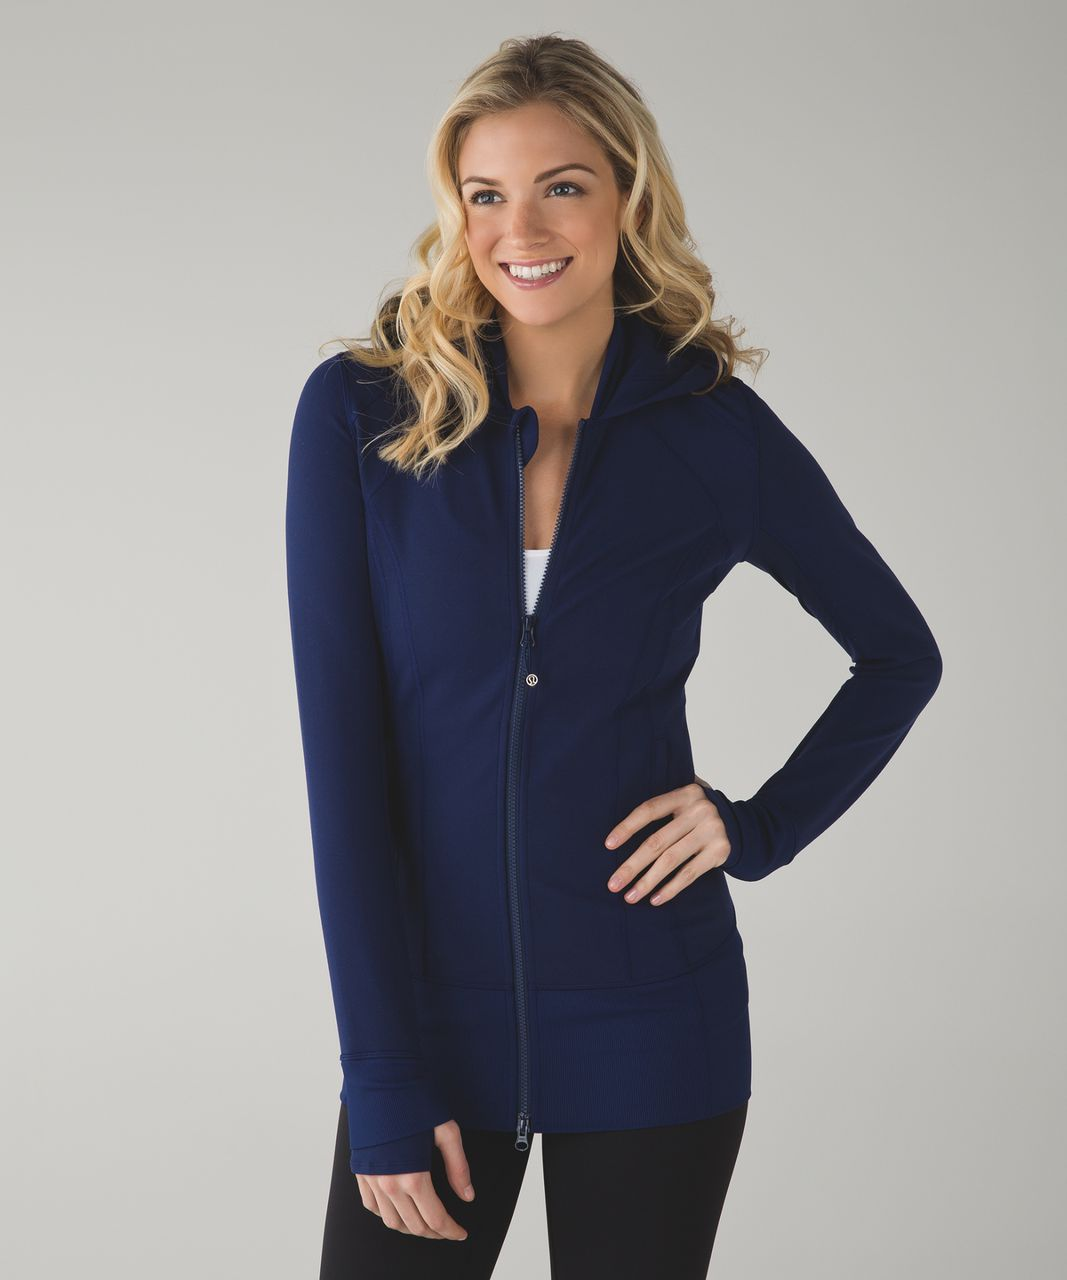 Lululemon Daily Practice Jacket - Hero Blue